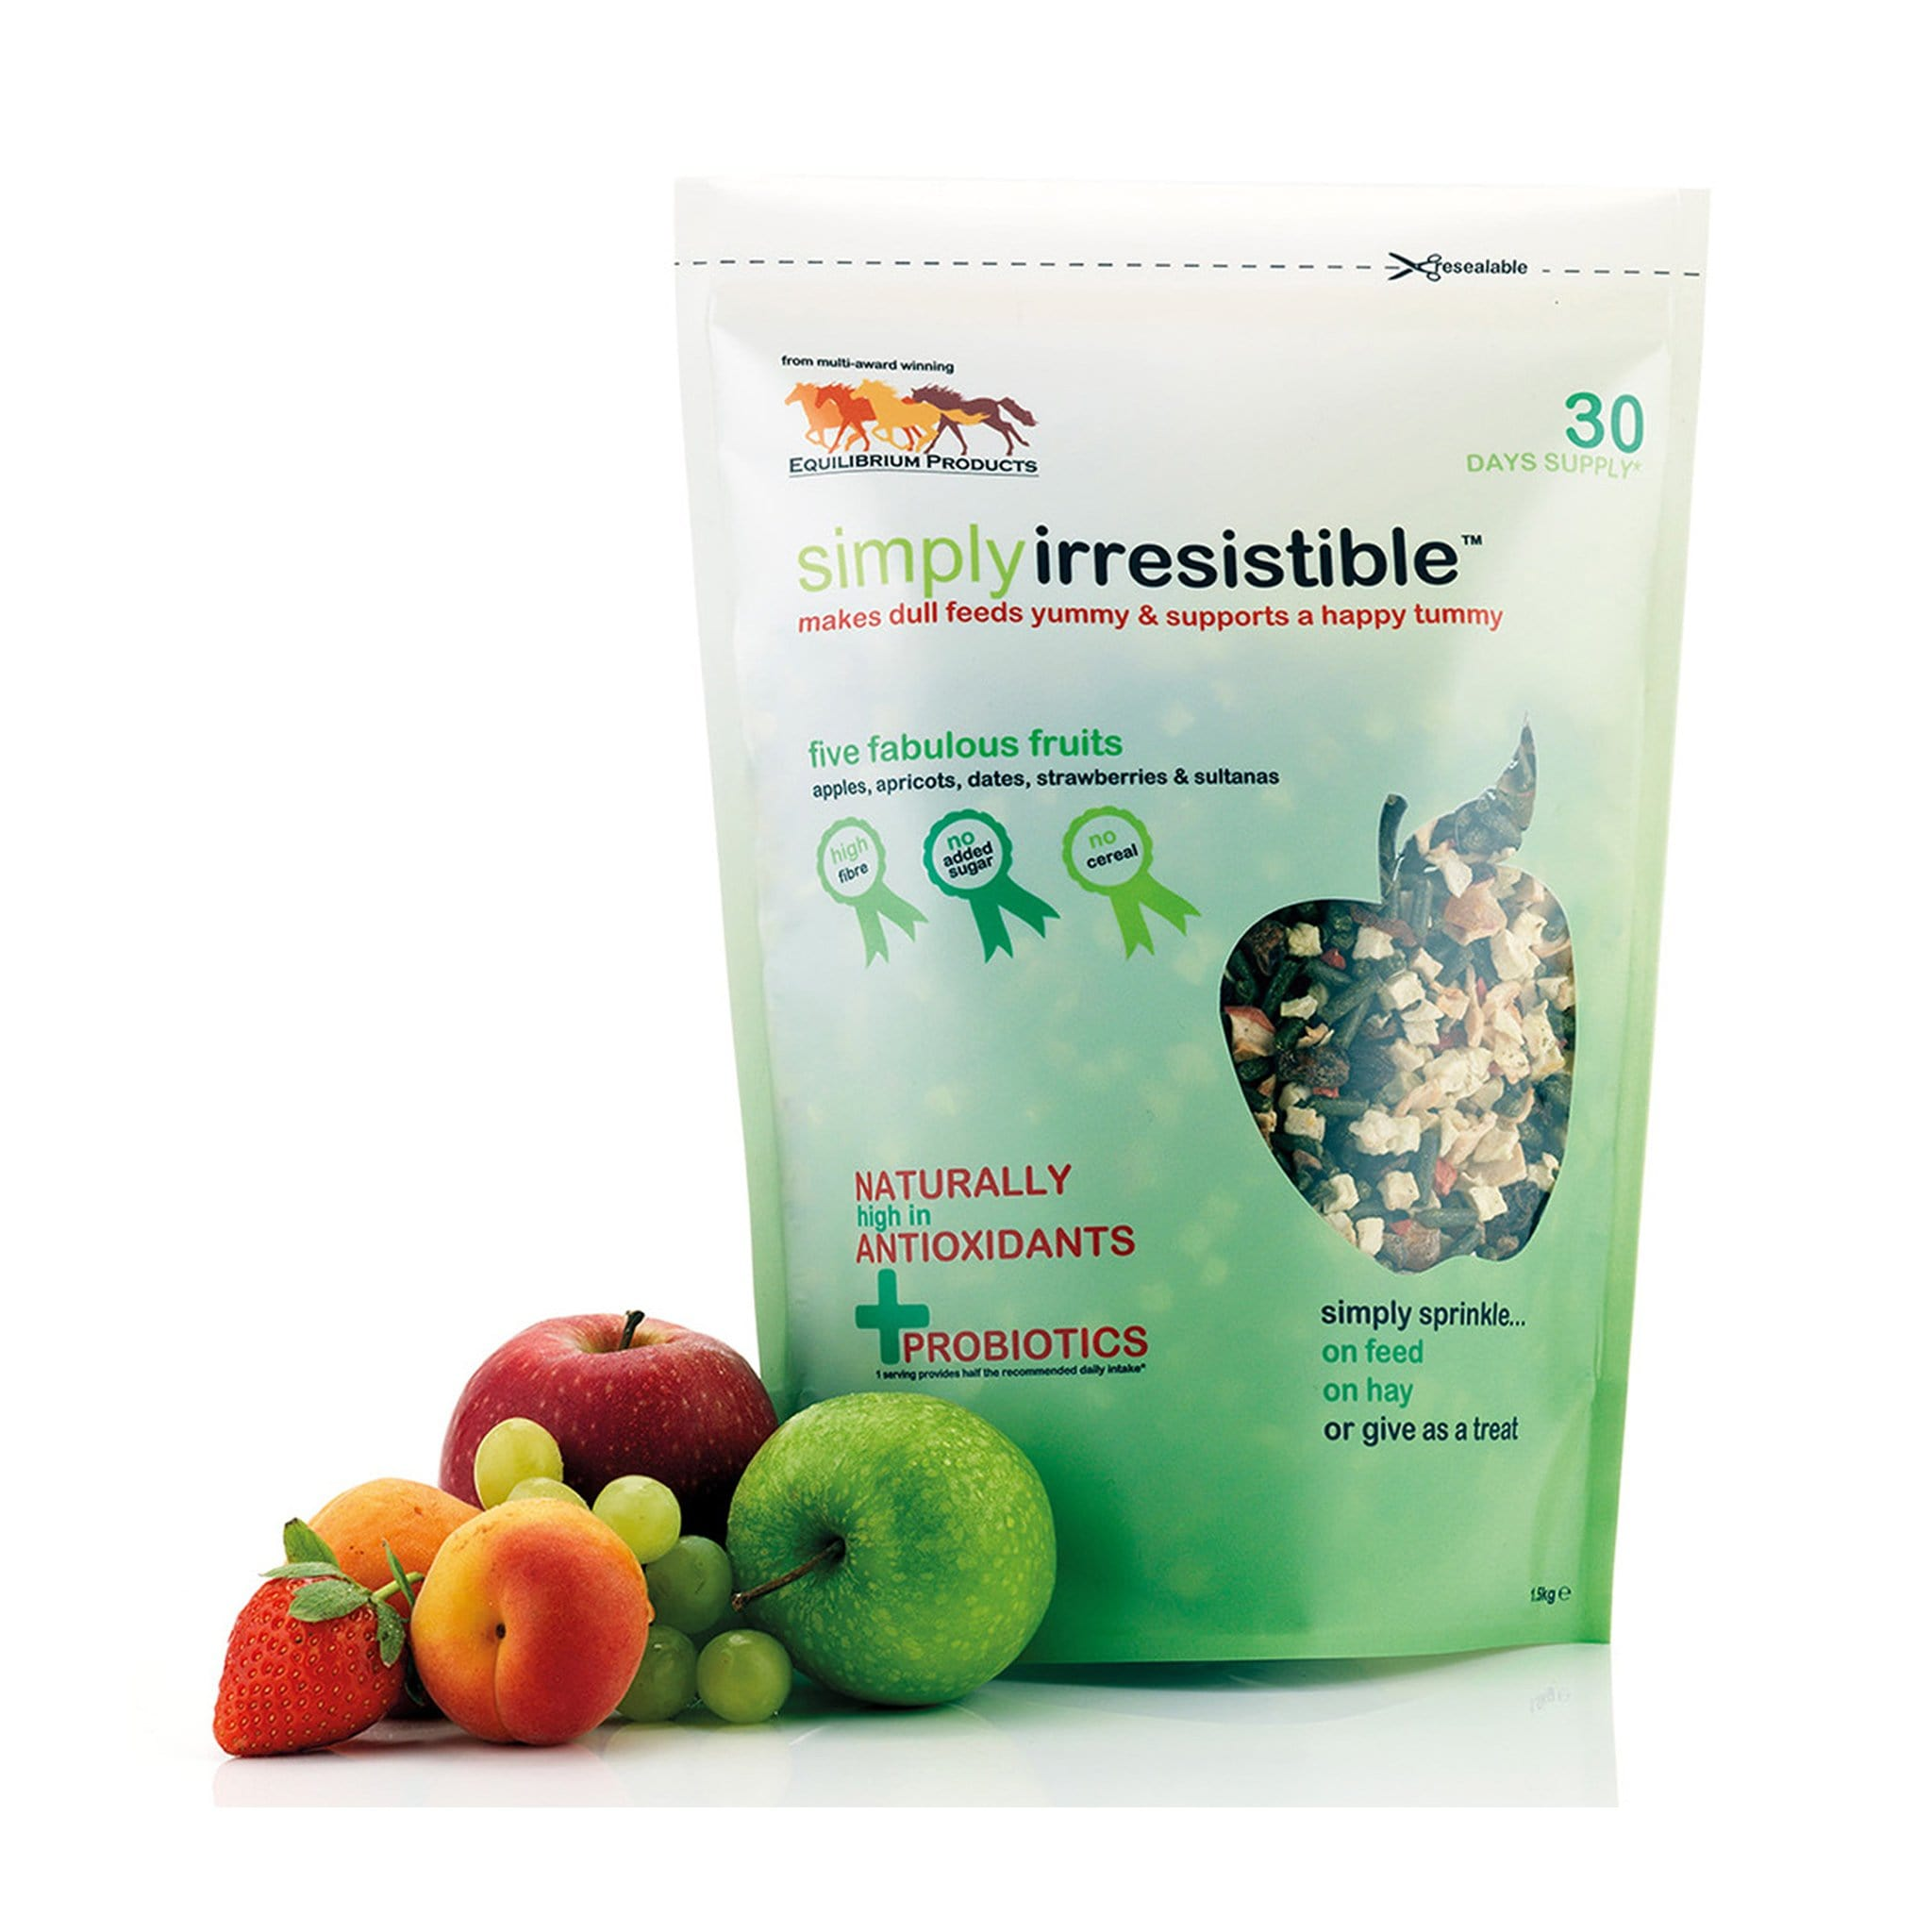 EQB0100 Equilibirum Simply Irresistible Fabulous Fruits 1.5 Kg